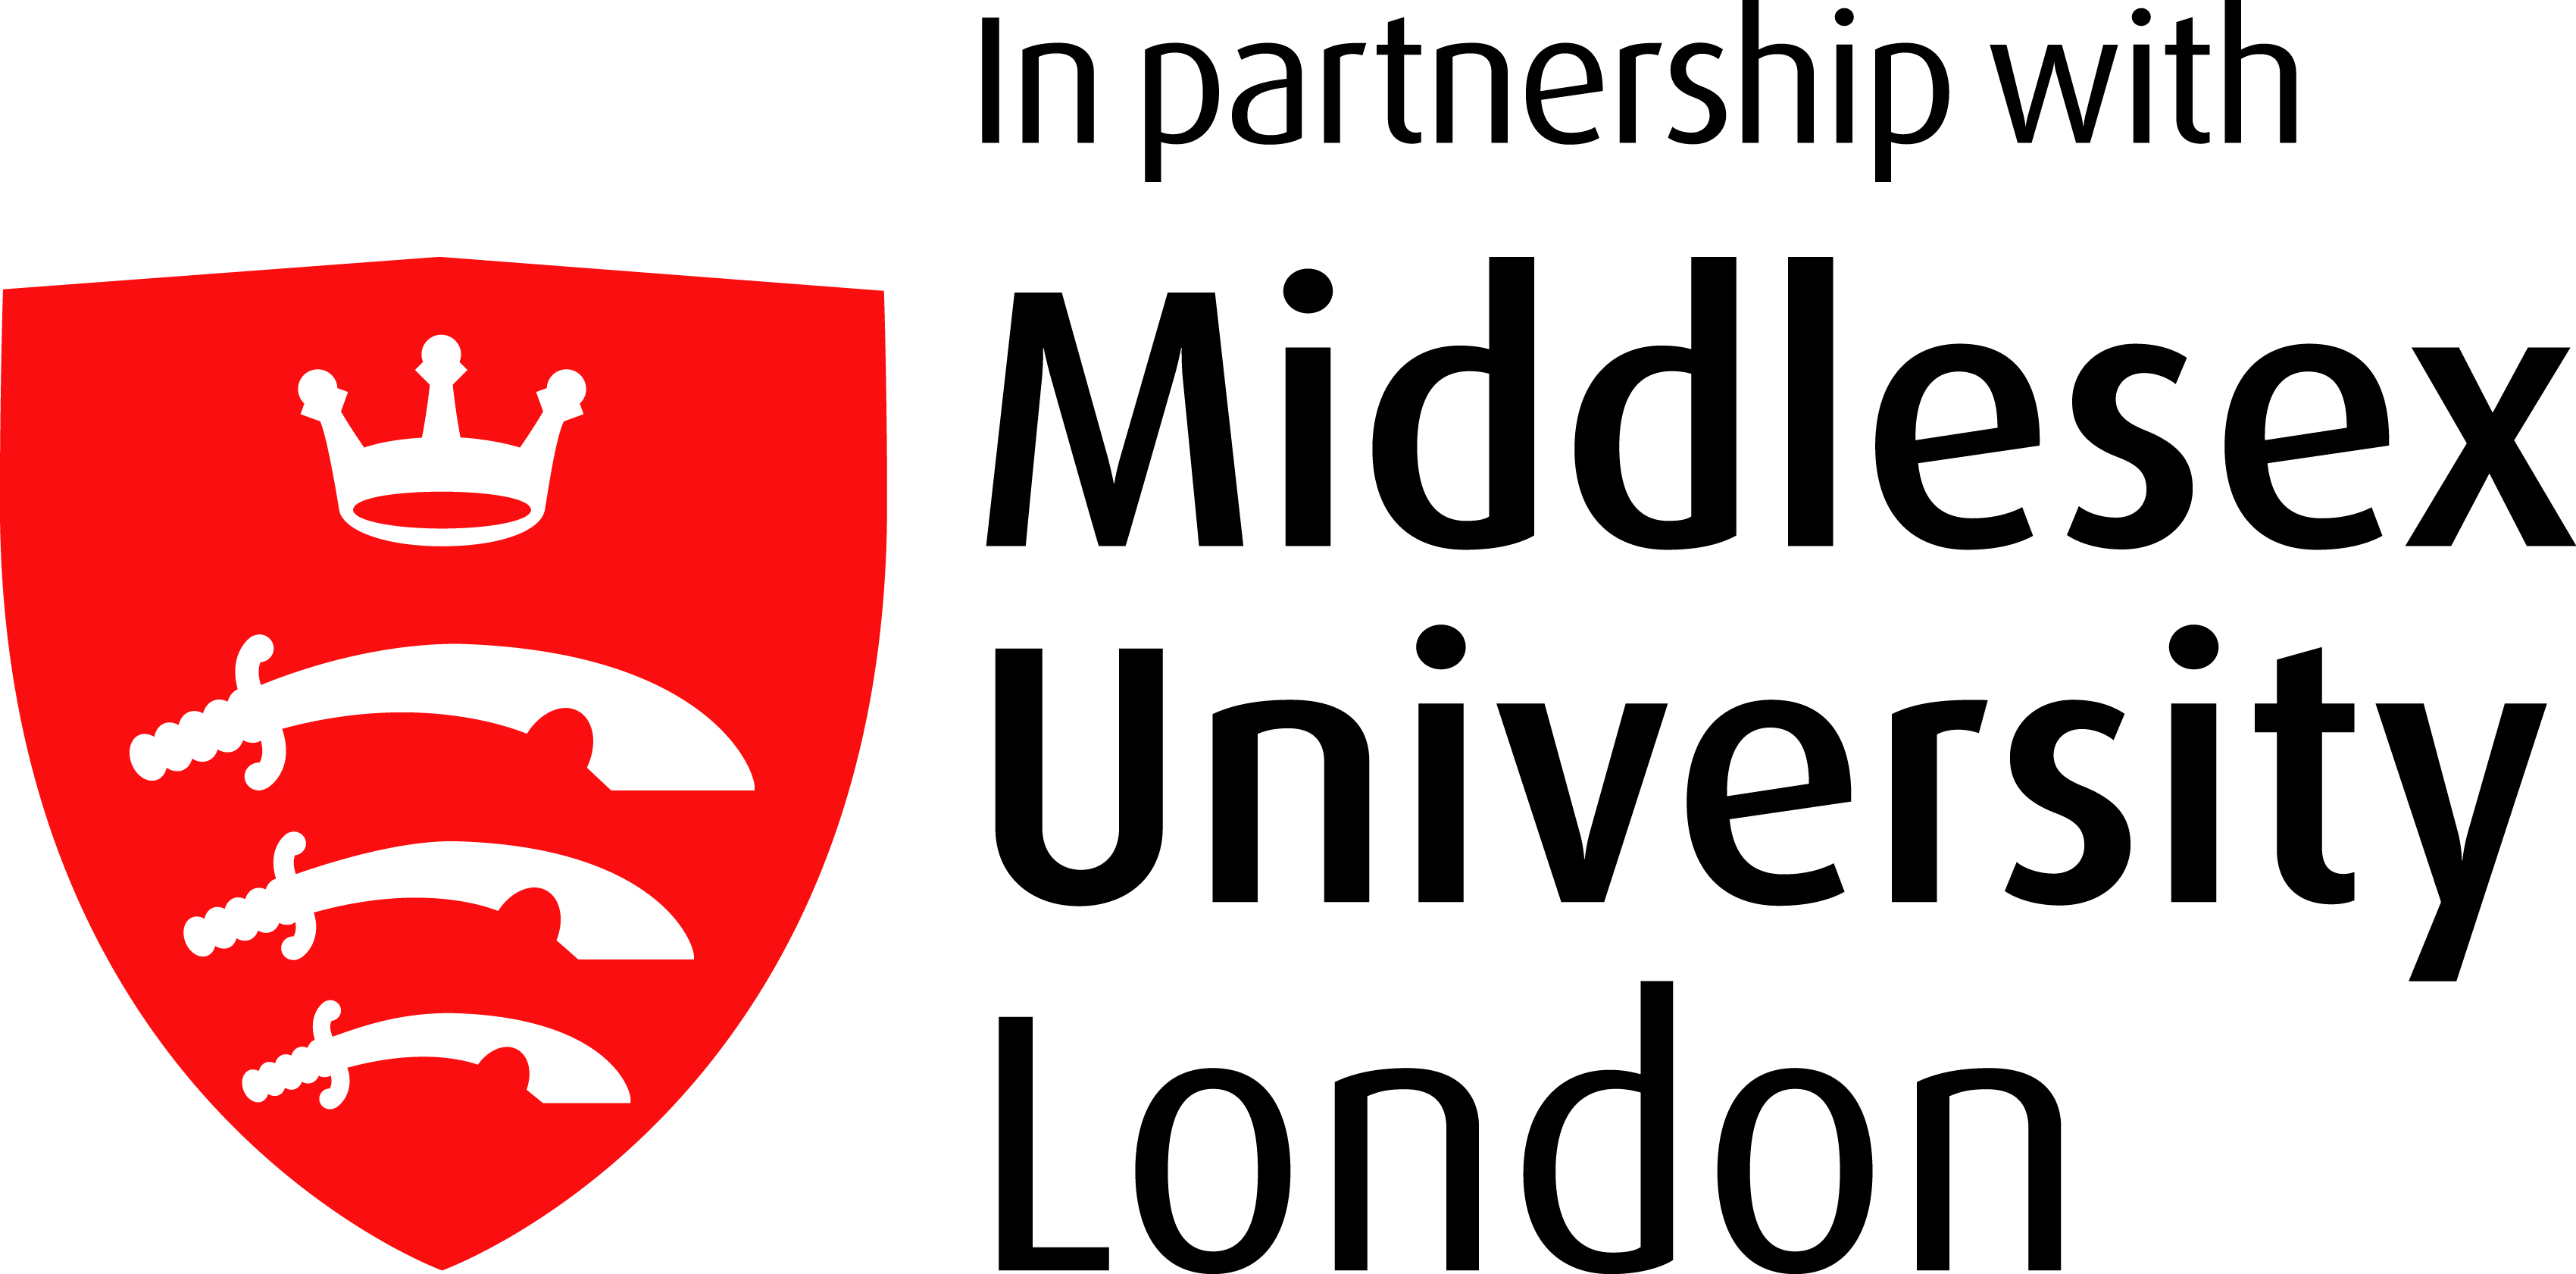 In partnership with Middlesex University